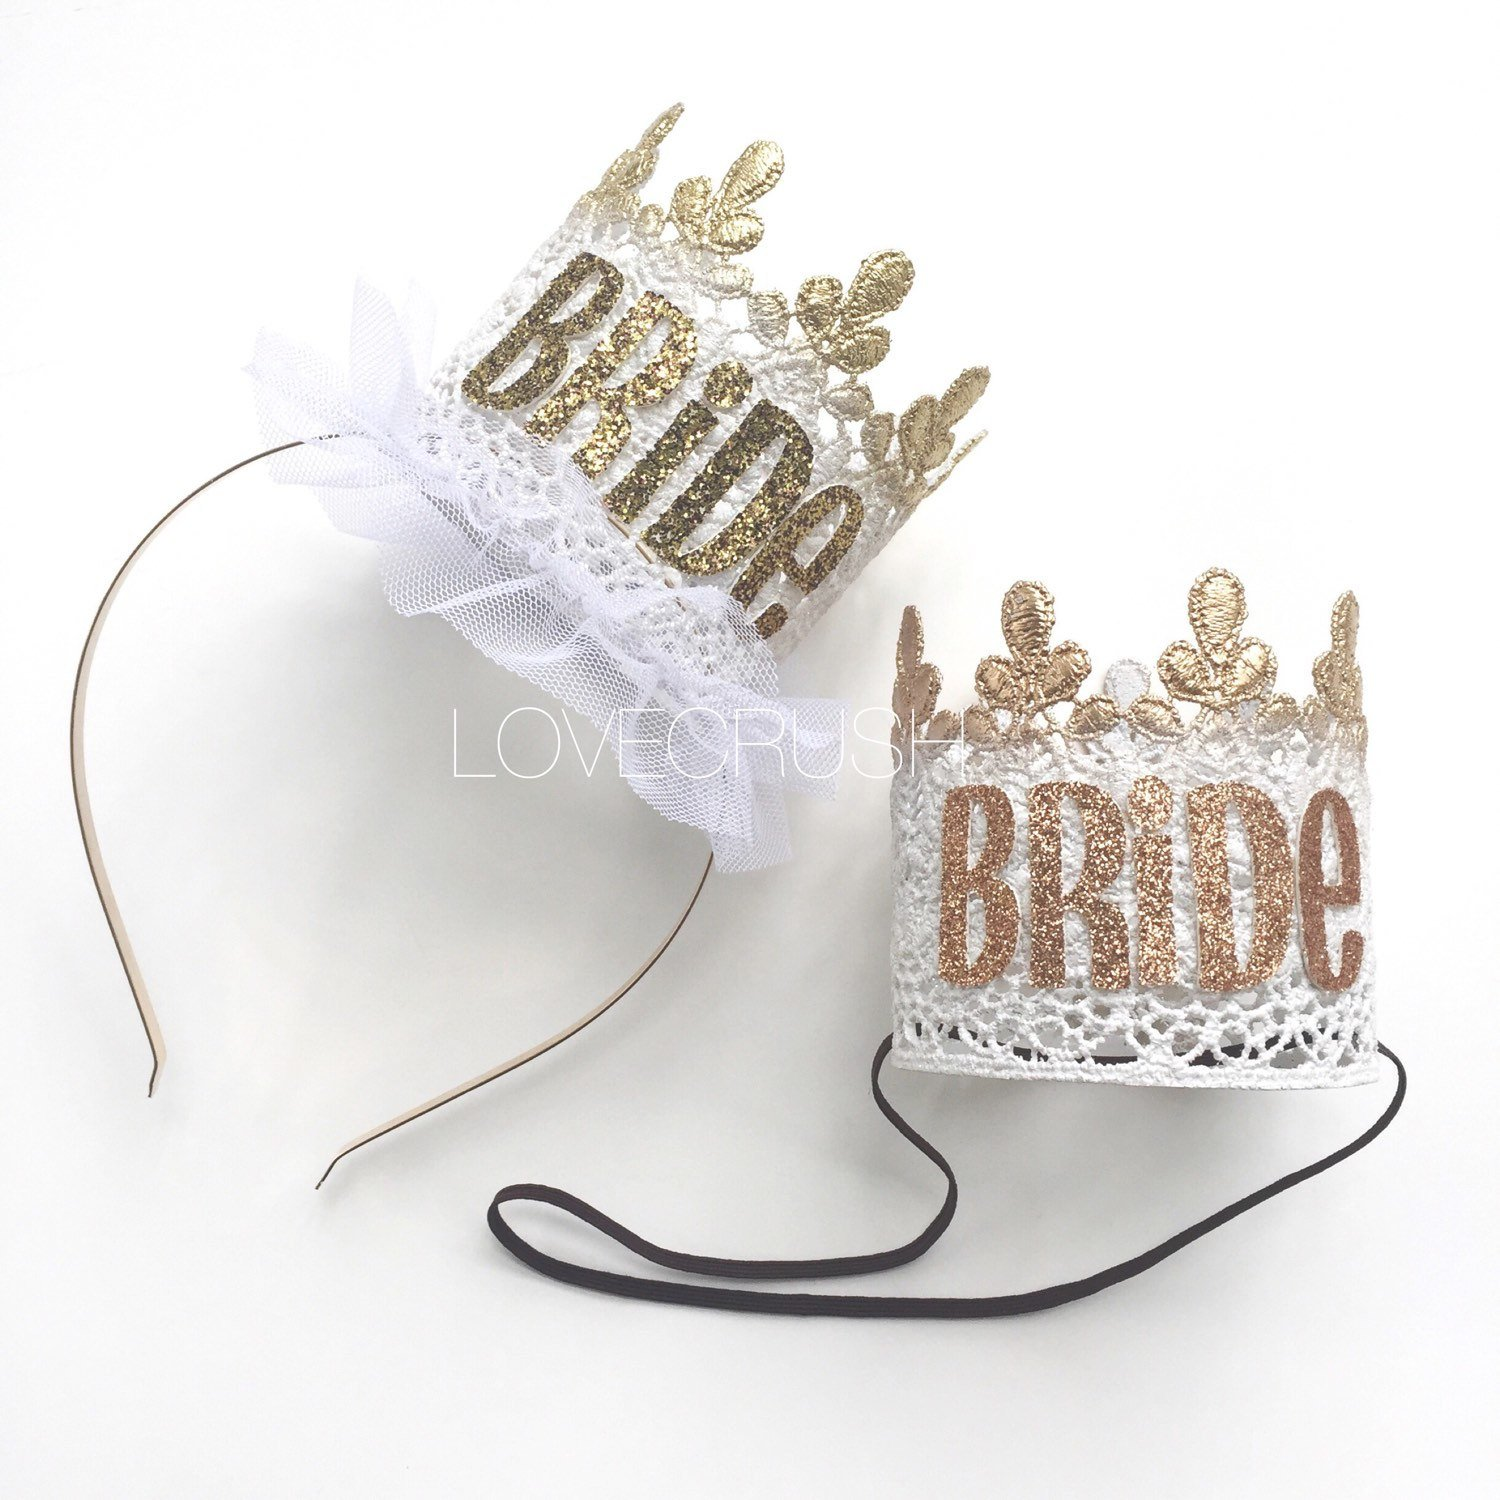 Make your bride to be's bridal shower or bachelorette weekend extra special with a fancy lace crown. Can be created with a metal headband or elastic. From Love Crush Crowns - as seen on Brenda's Wedding Blog www.brendasweddingblog.com #weddinggift #bridalshowergift #engagementgift #bacheloretteparty #lacecrown #bridalaccessory #bridetobe #bacheloretteweekend